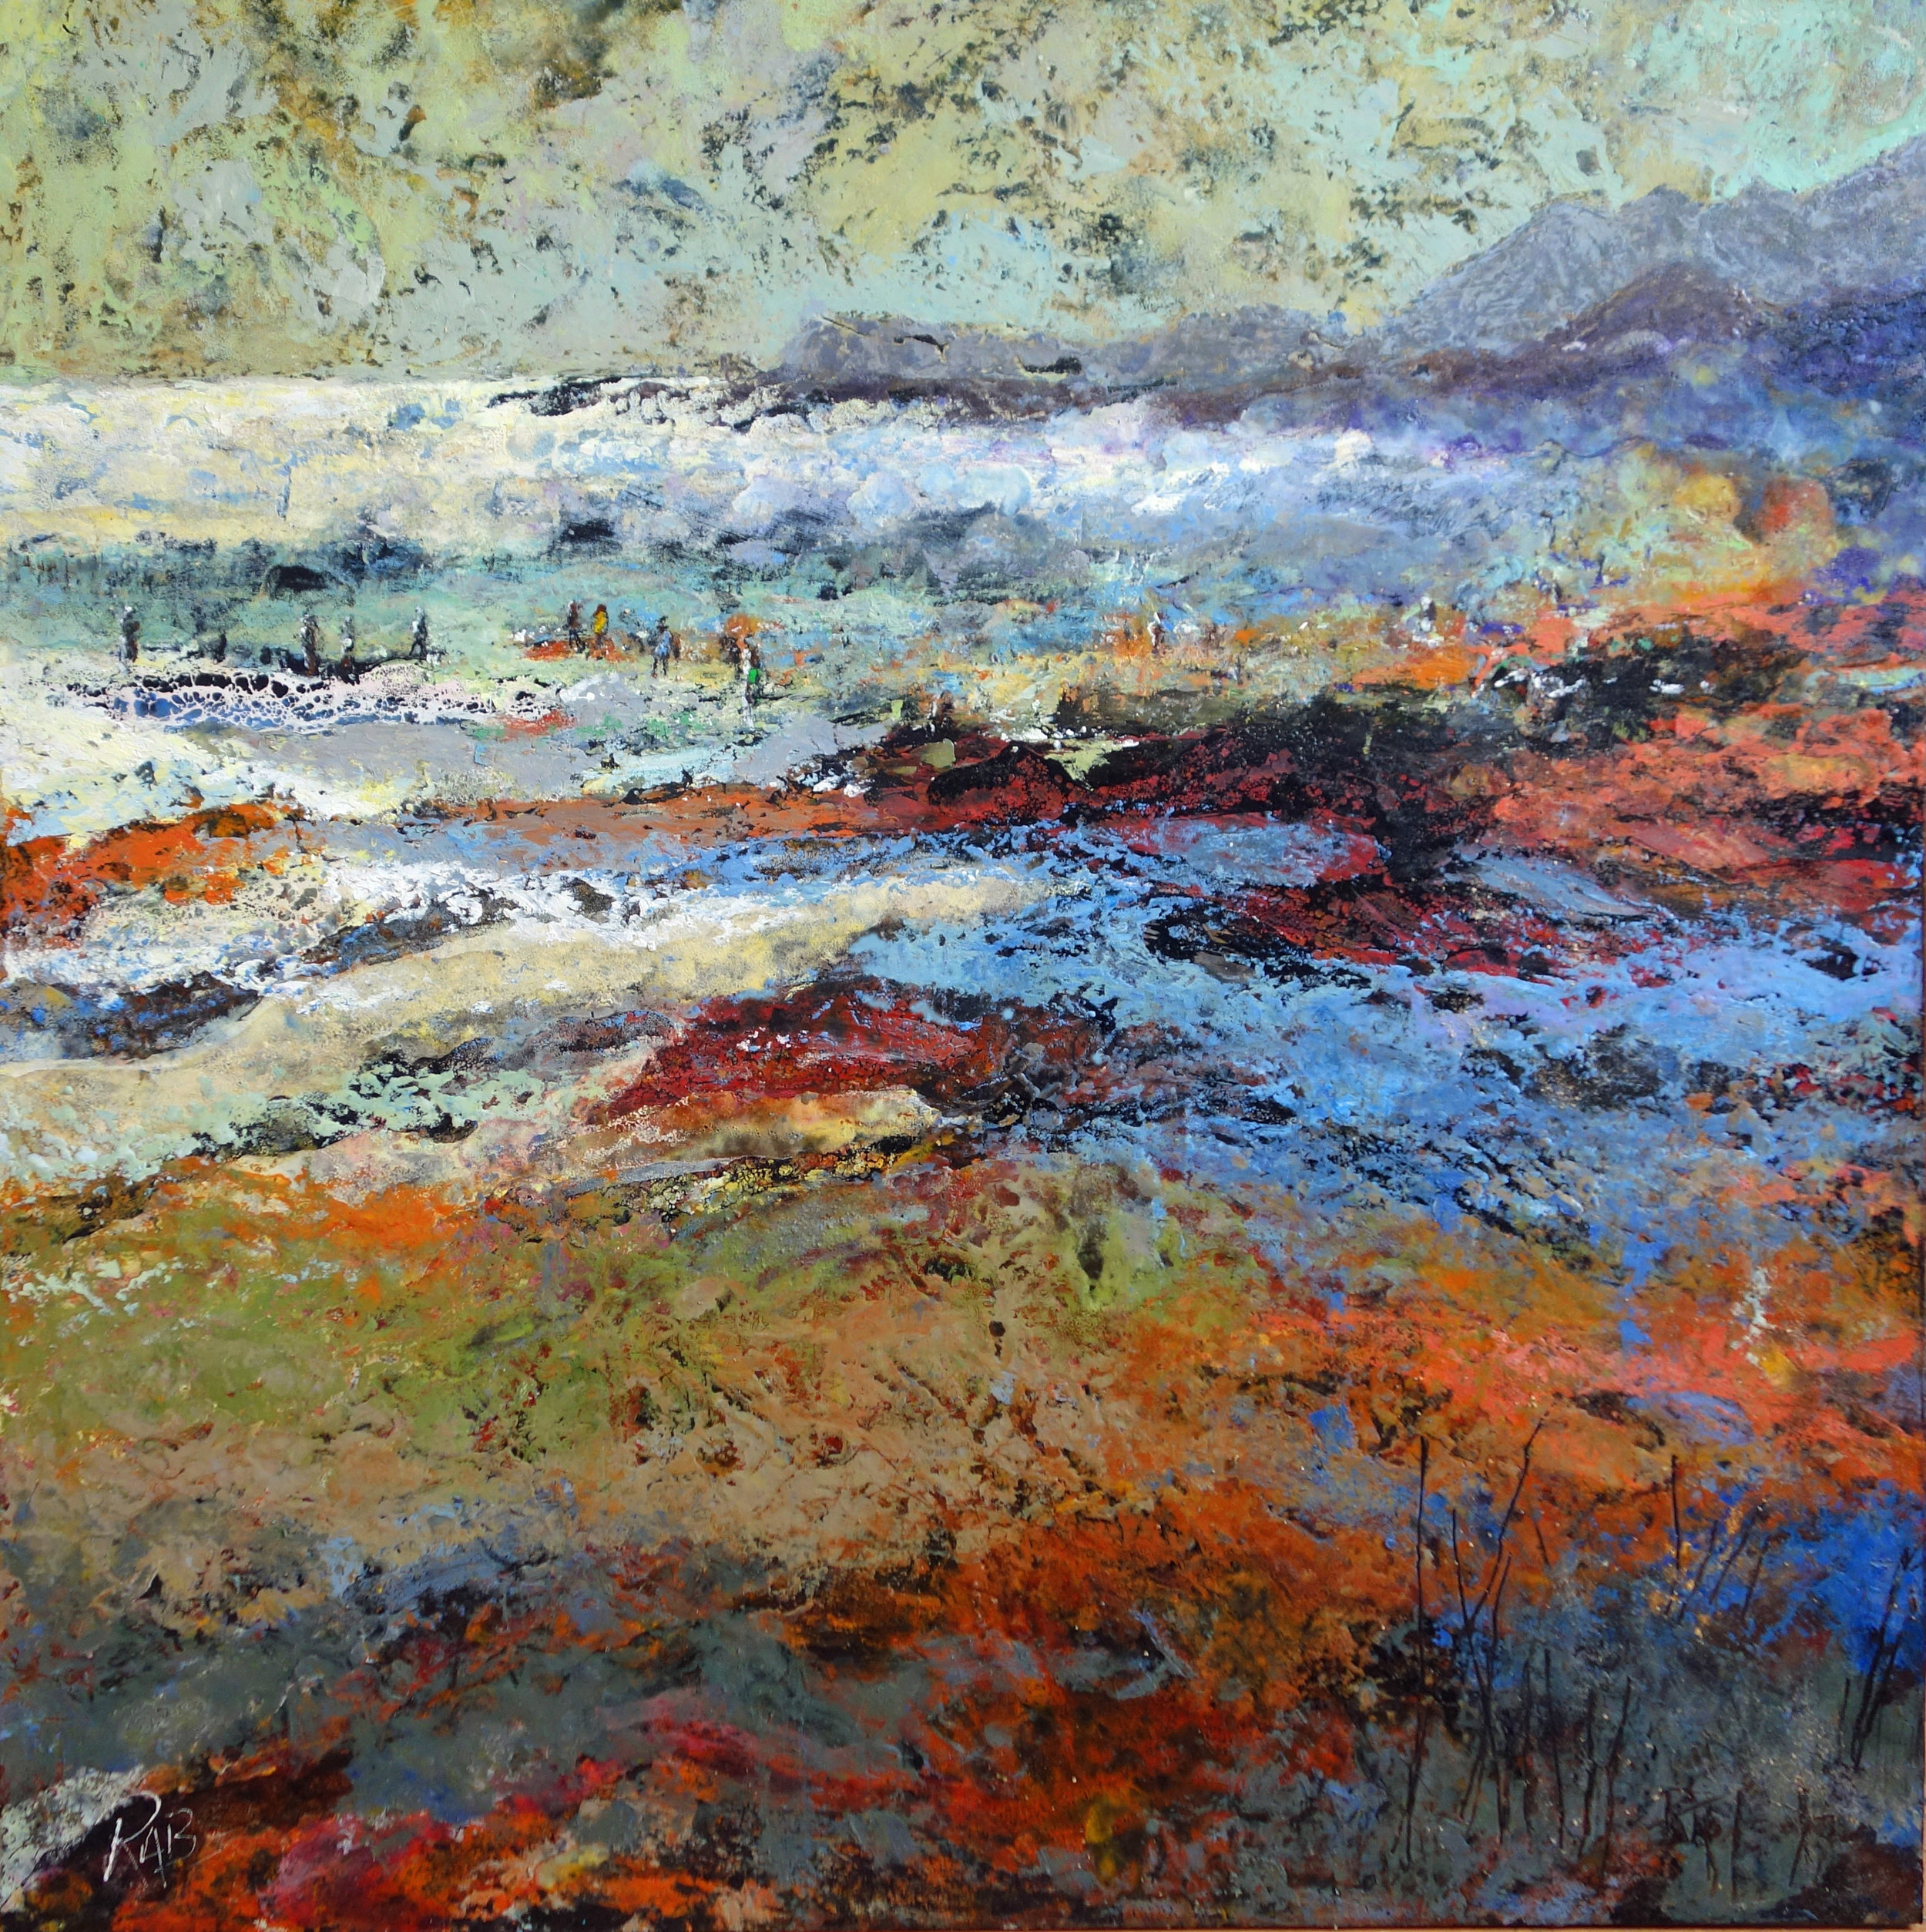 The Tide Rushing In  Oil based mixed media on board  75cm x 75cm  sold